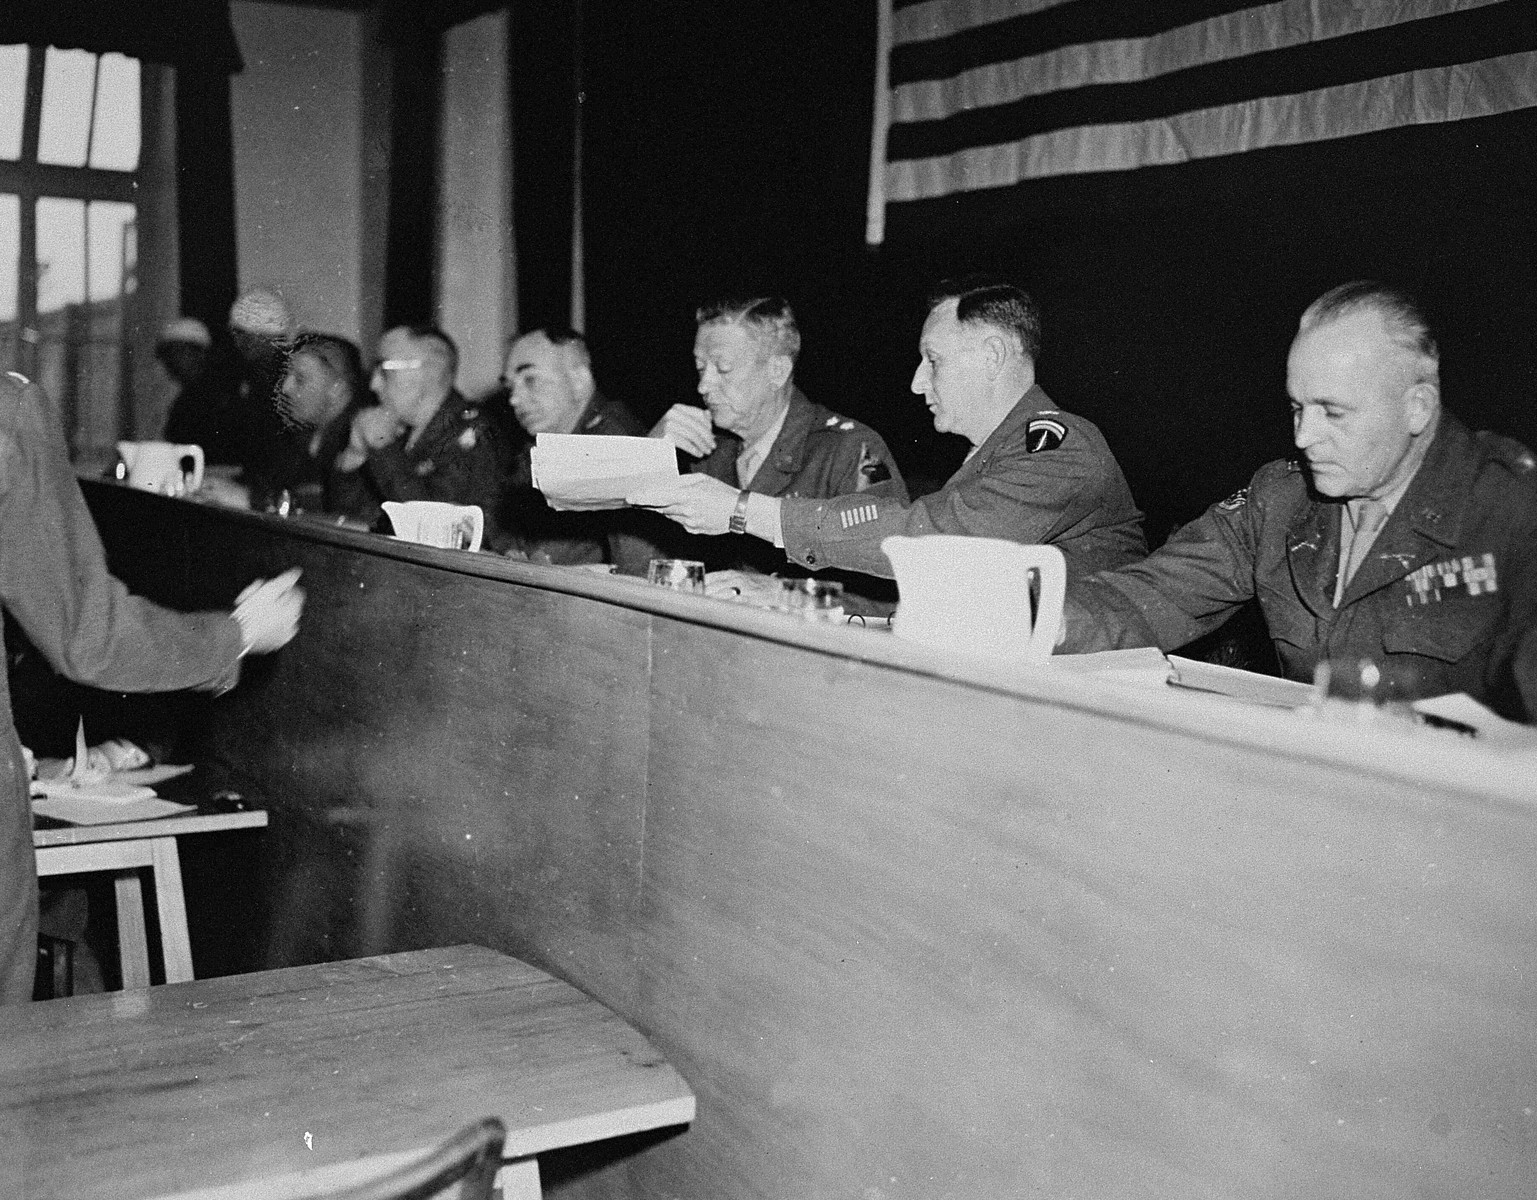 The American Military Tribunal hearing the trial of 61 former camp personnel and prisoners from Mauthausen.  Third from the right is the Tribunal's president, Major General Fay Brink Prickett.